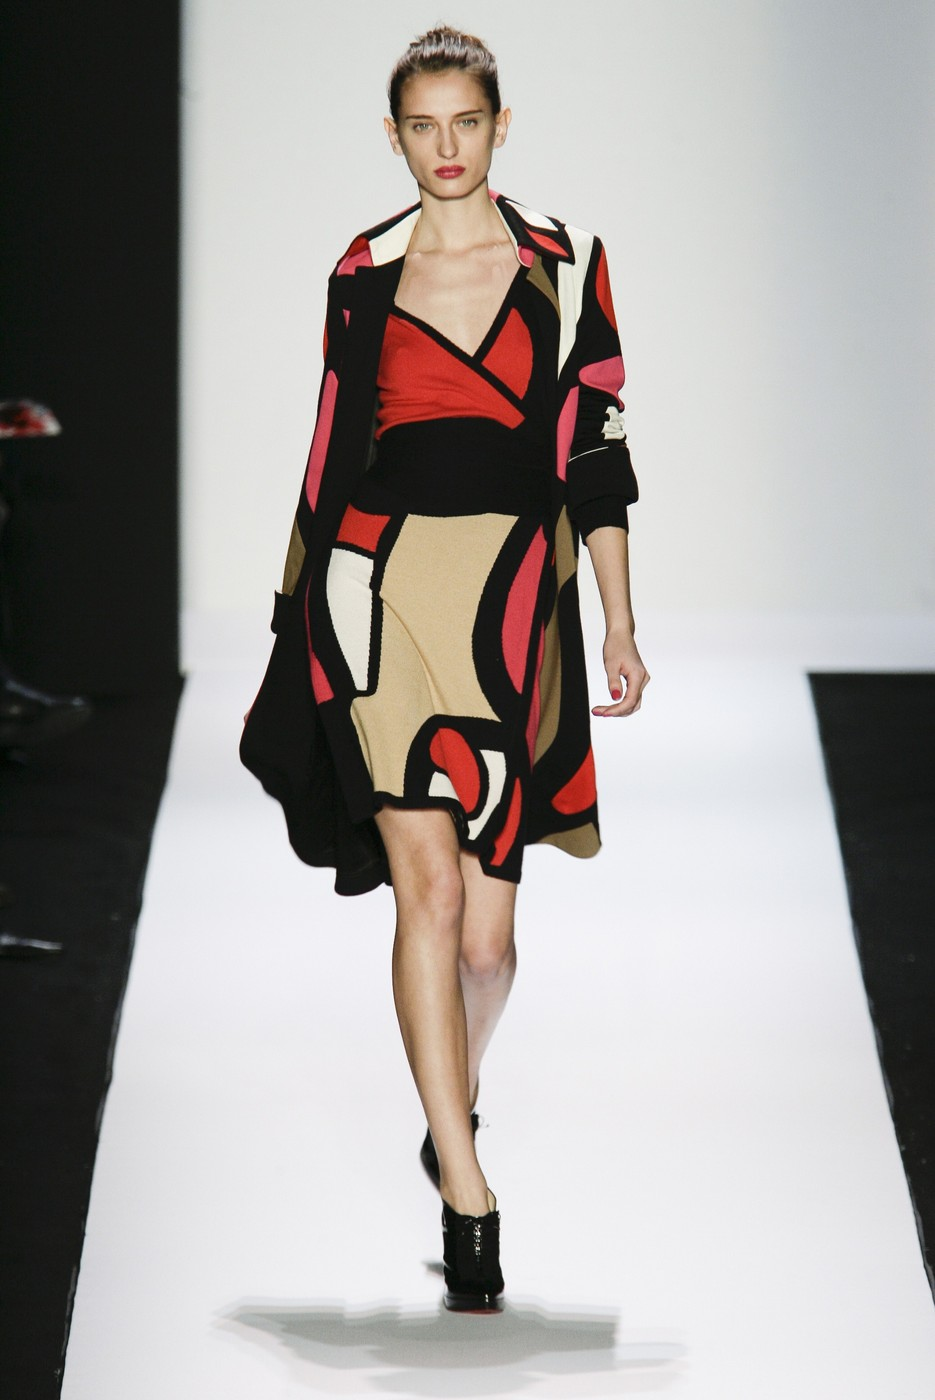 via fashioned by love | Diane von Furstenberg wrap-dress Fall/Winter 2007